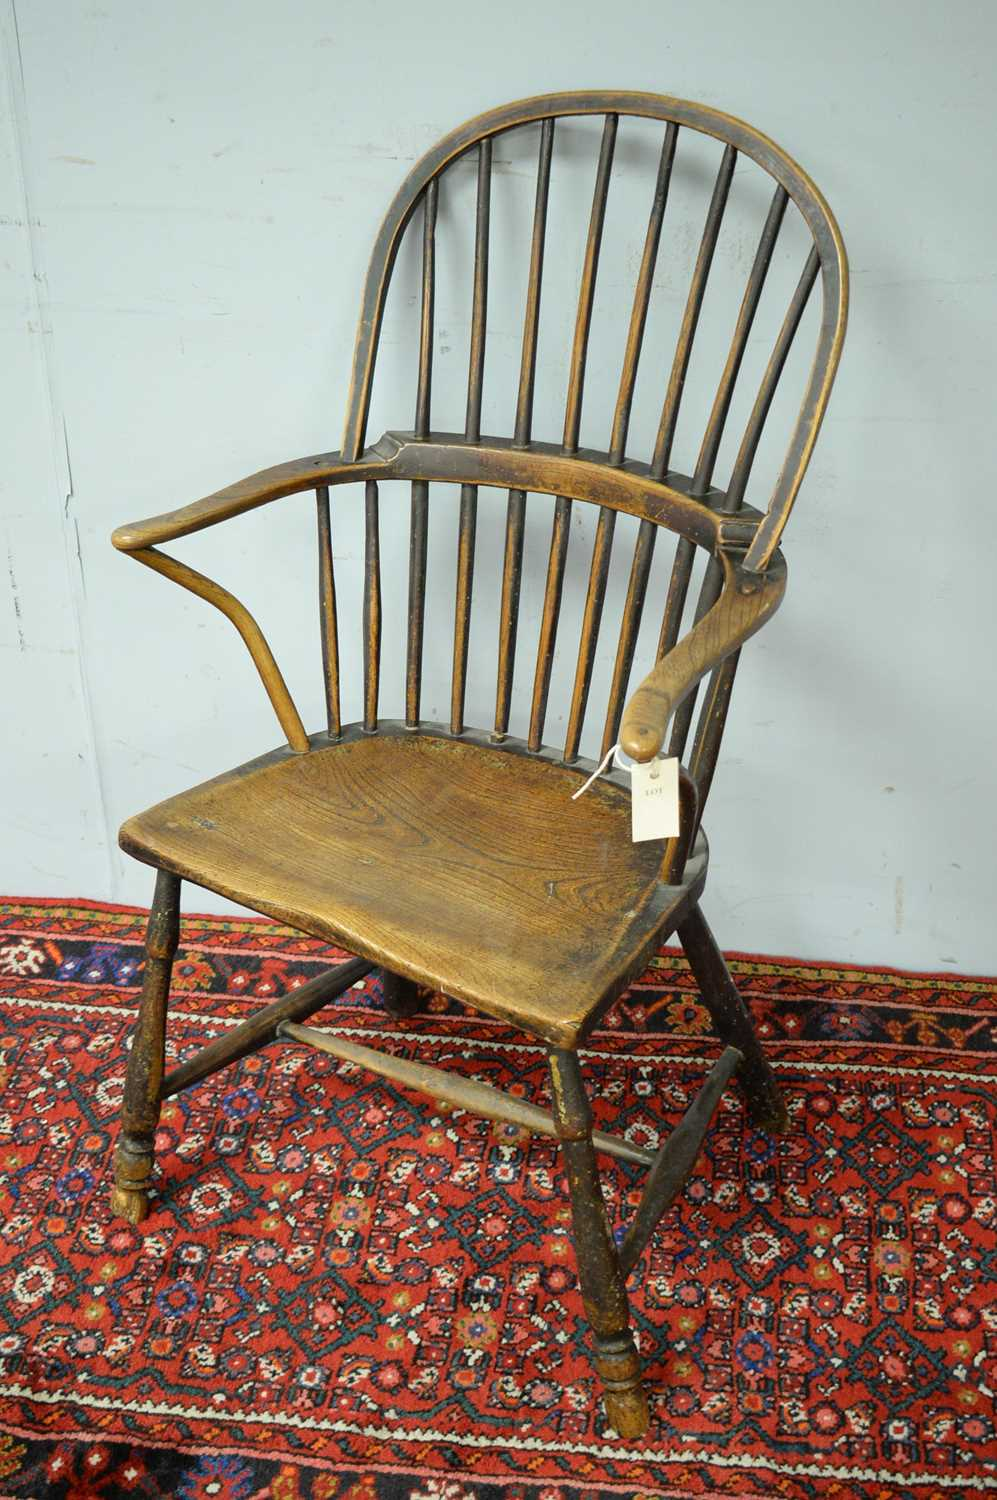 19th C Windsor chair. - Image 4 of 5